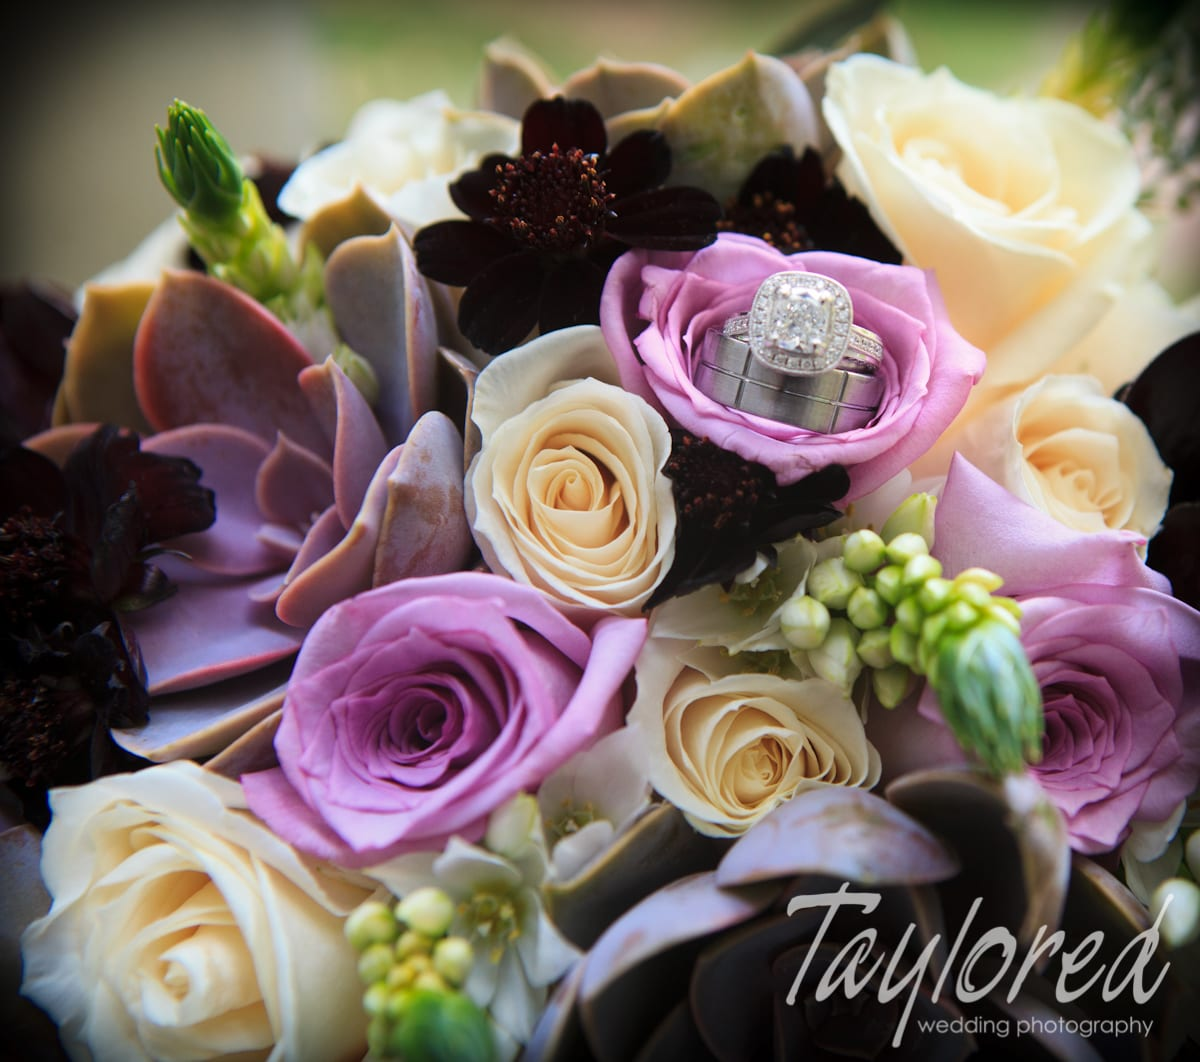 Taylored Photo Memories - Las Vegas Wedding Photographer - 3